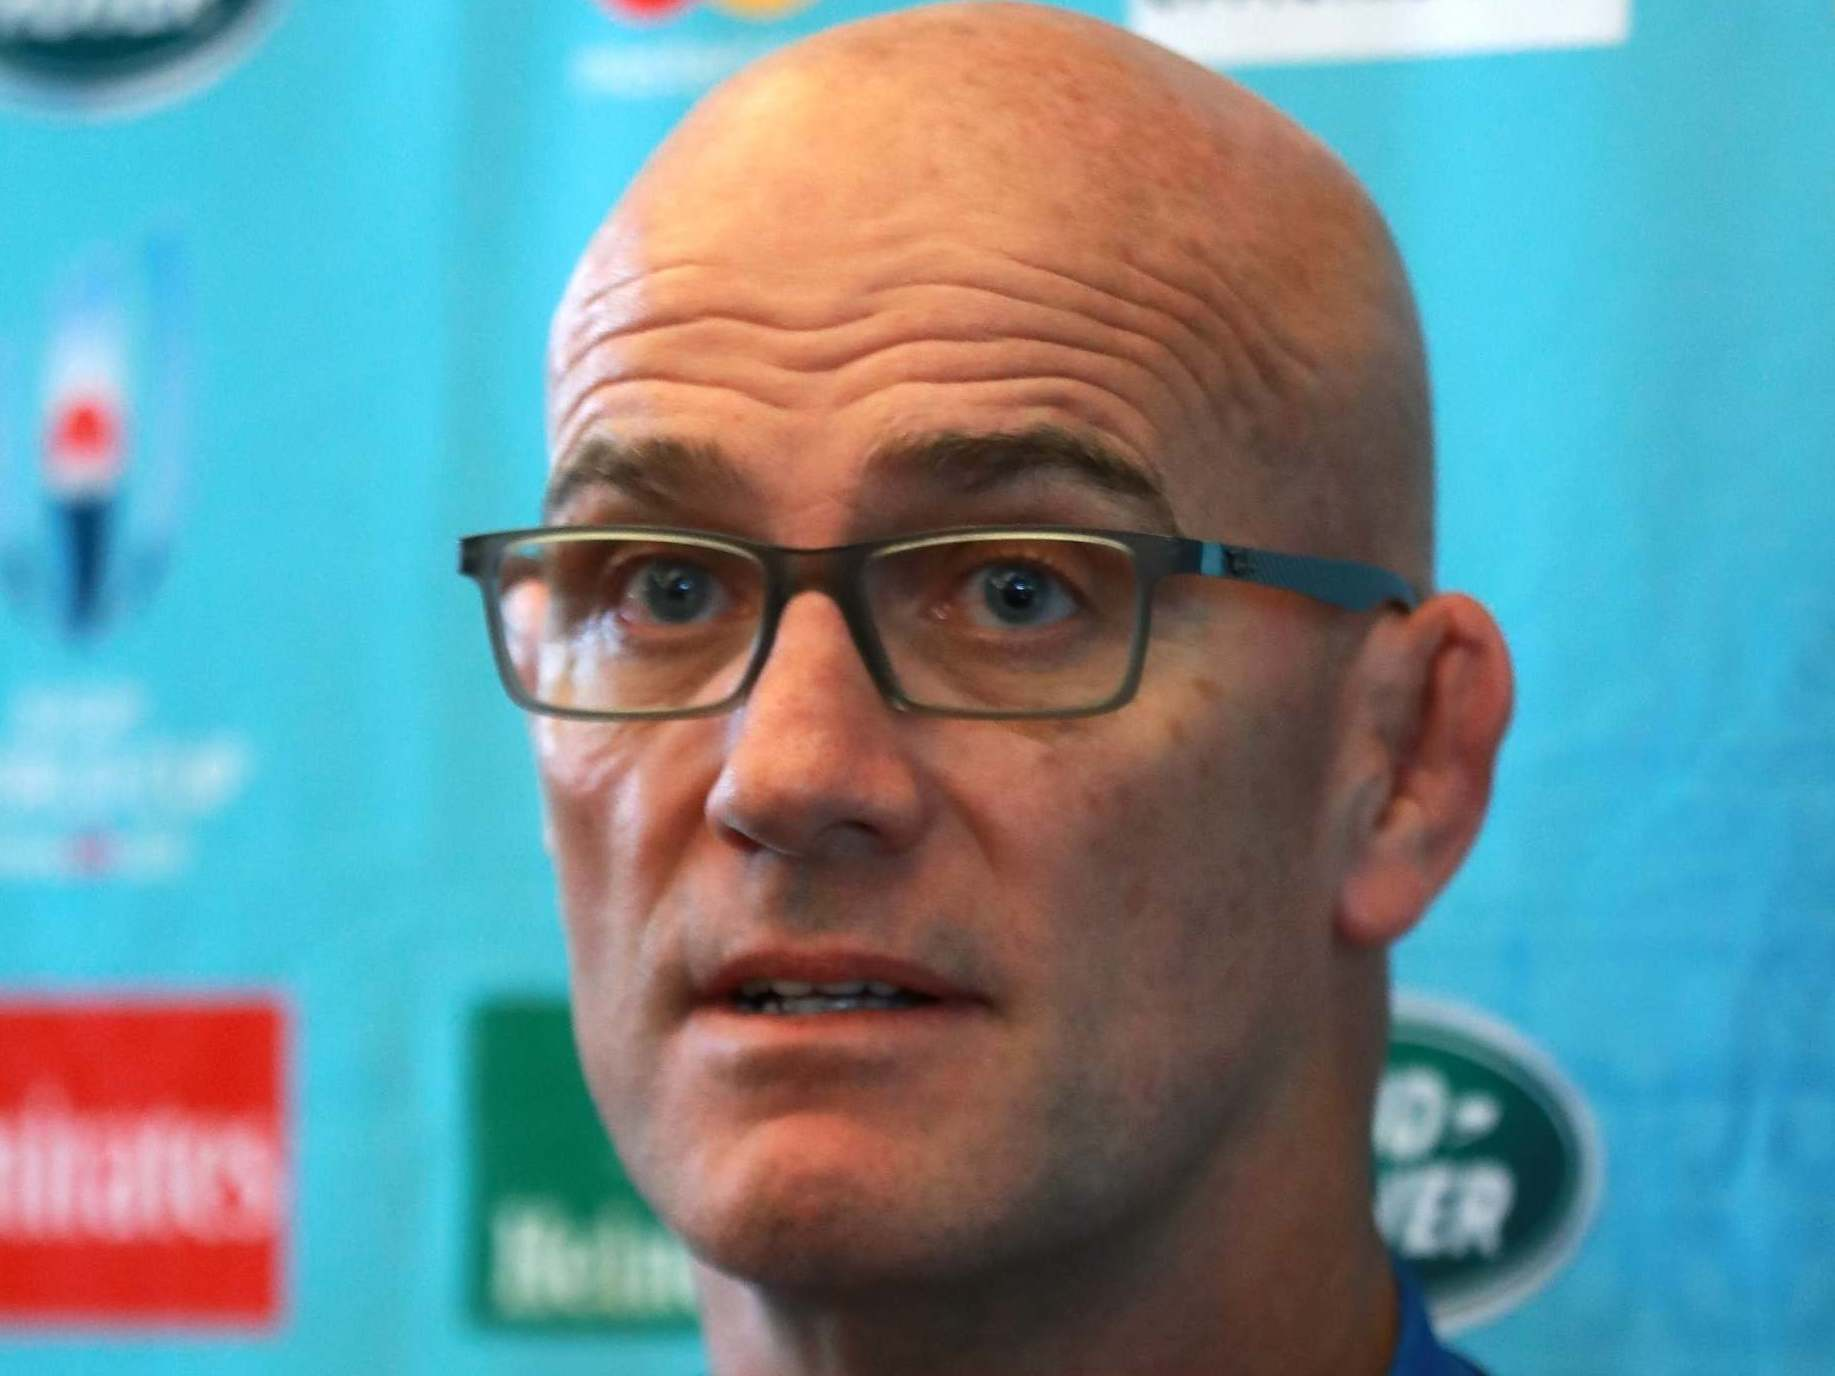 Rugby World Cup 2019: England ramping up pressure on All Blacks despite 'spygate' scandal, says John Mitchell